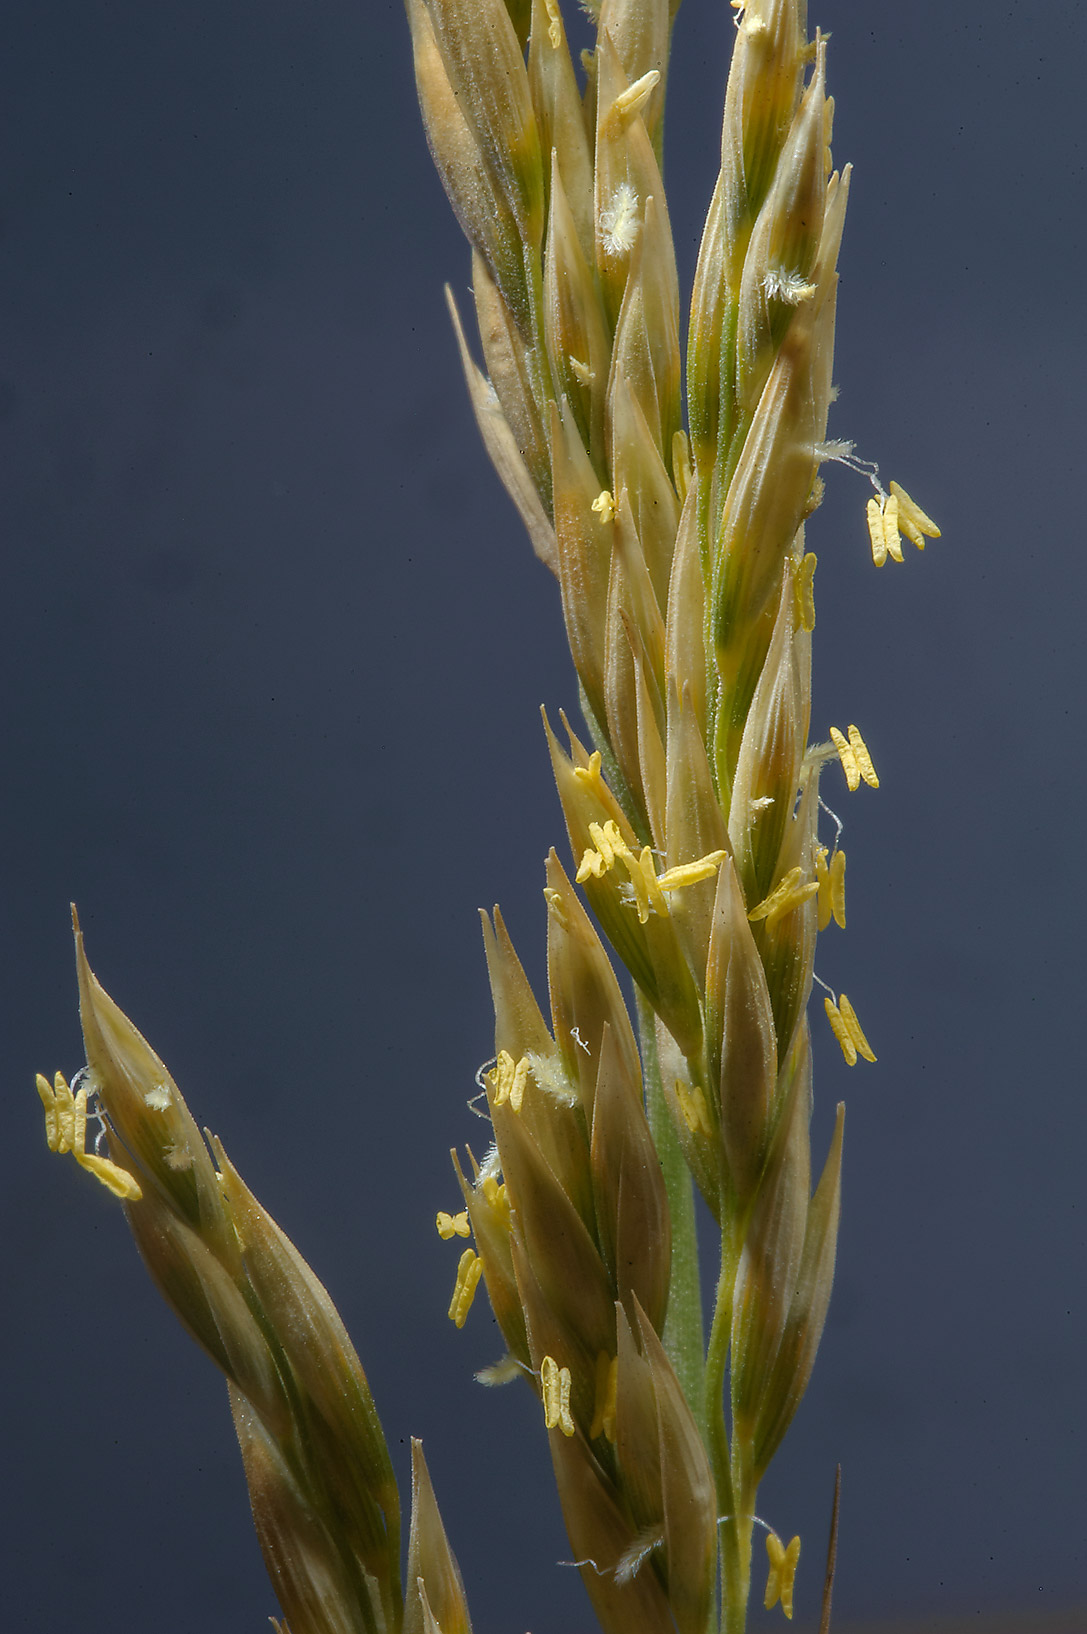 Close up of a spike of Centropodia fragilis grass...near Inland Sea Rd.. Southern Qatar